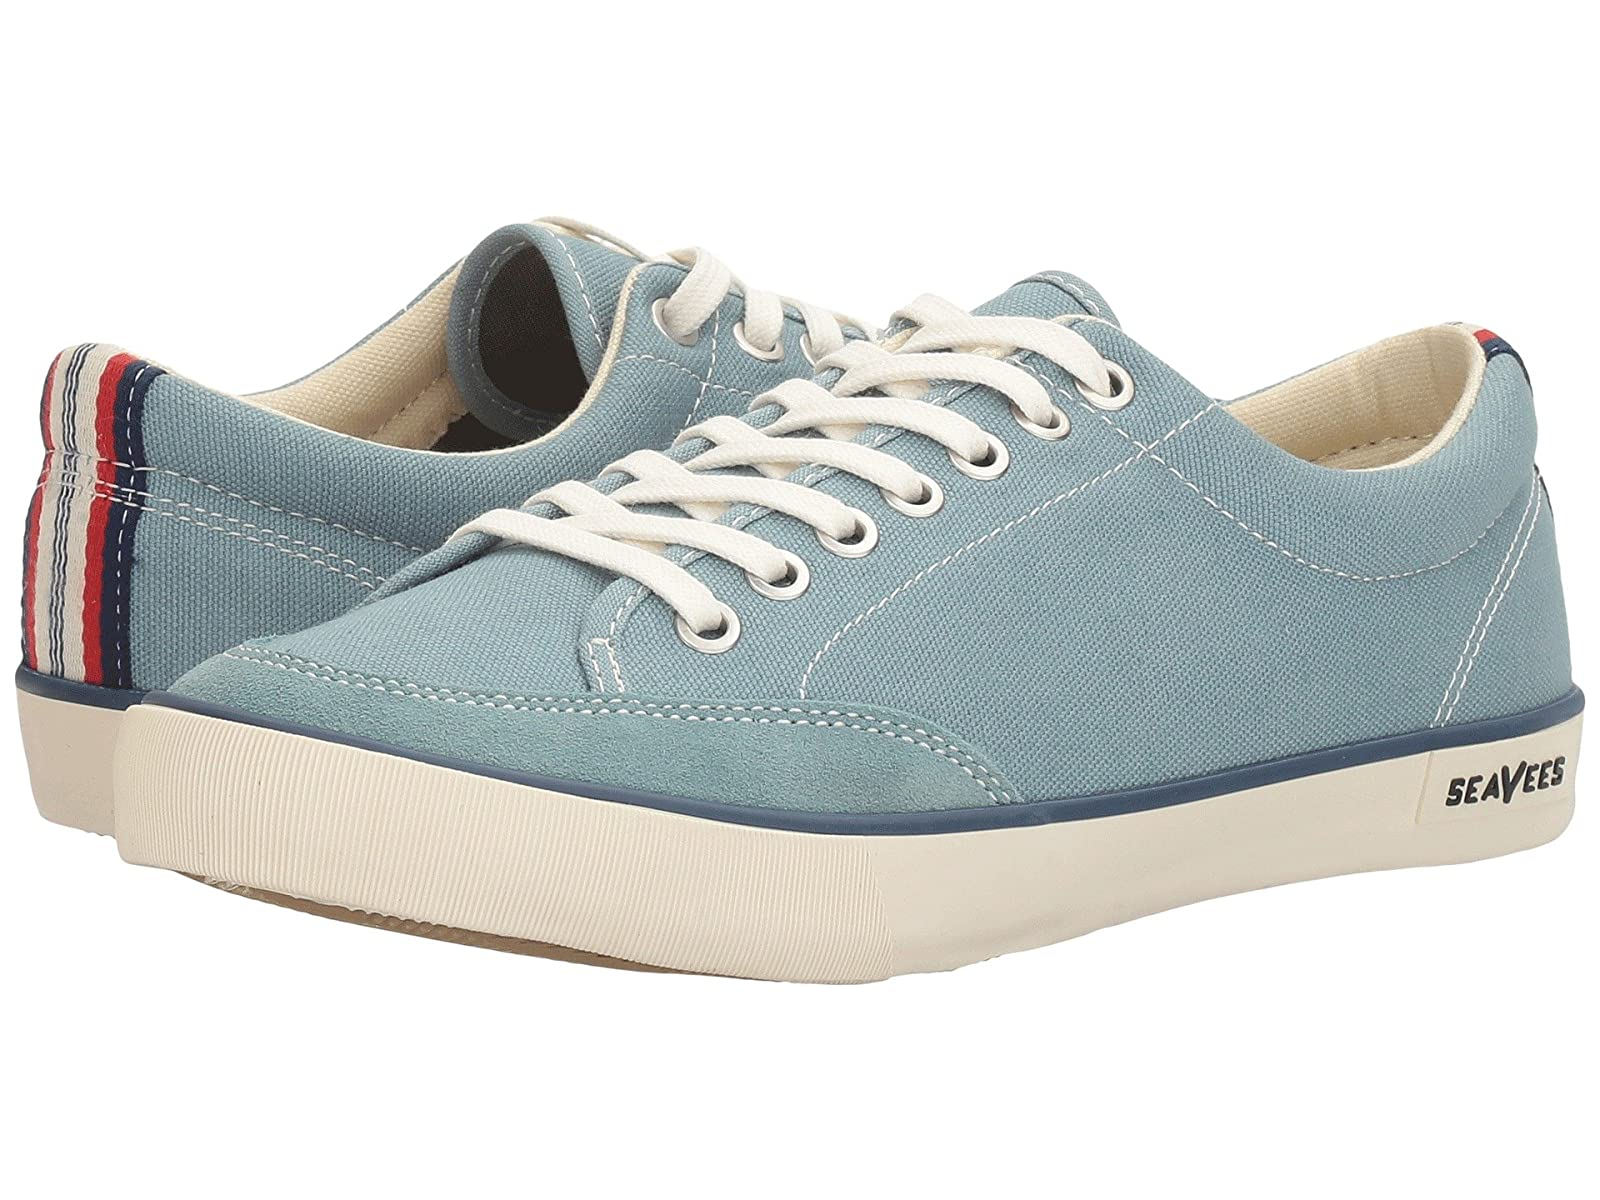 SeaVees 05/65 Westwood Tennis StandardCheap and distinctive eye-catching shoes